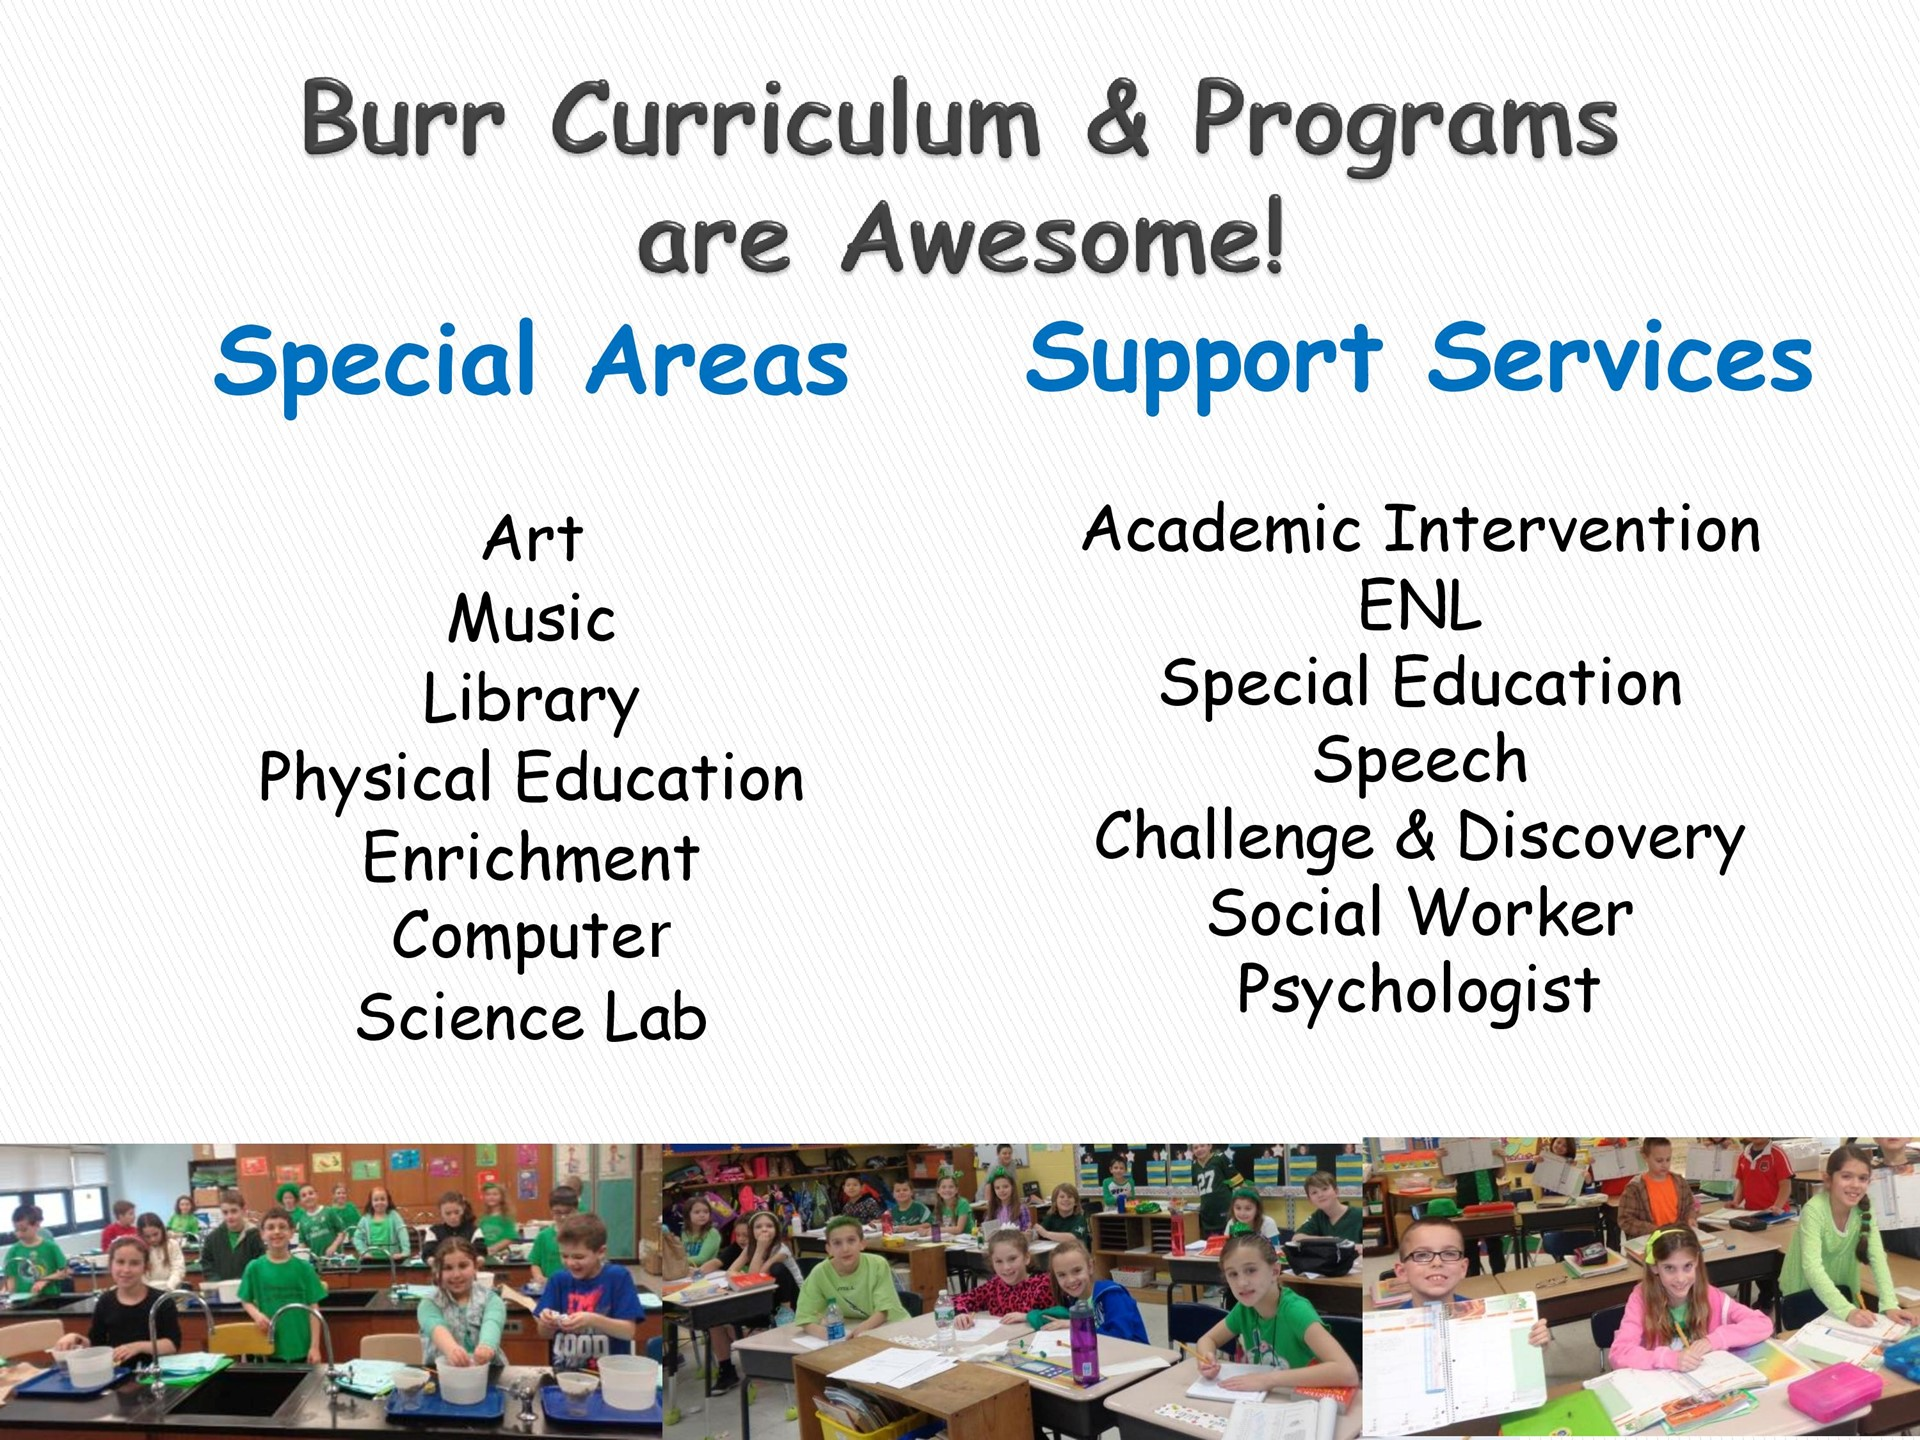 Burr Curriculum & Programs are Awesome!